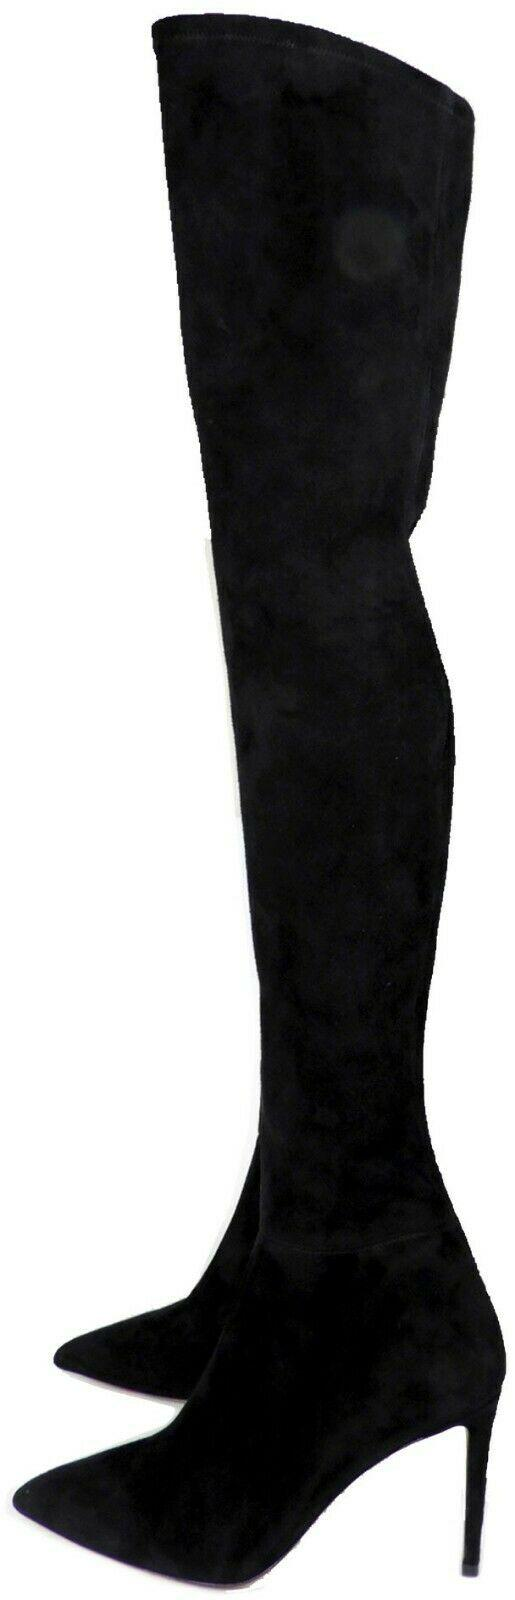 $1190 BRUNO MAGLI Over the Knee Boots Stretch Suede Alberta Thigh-High Shoes 38